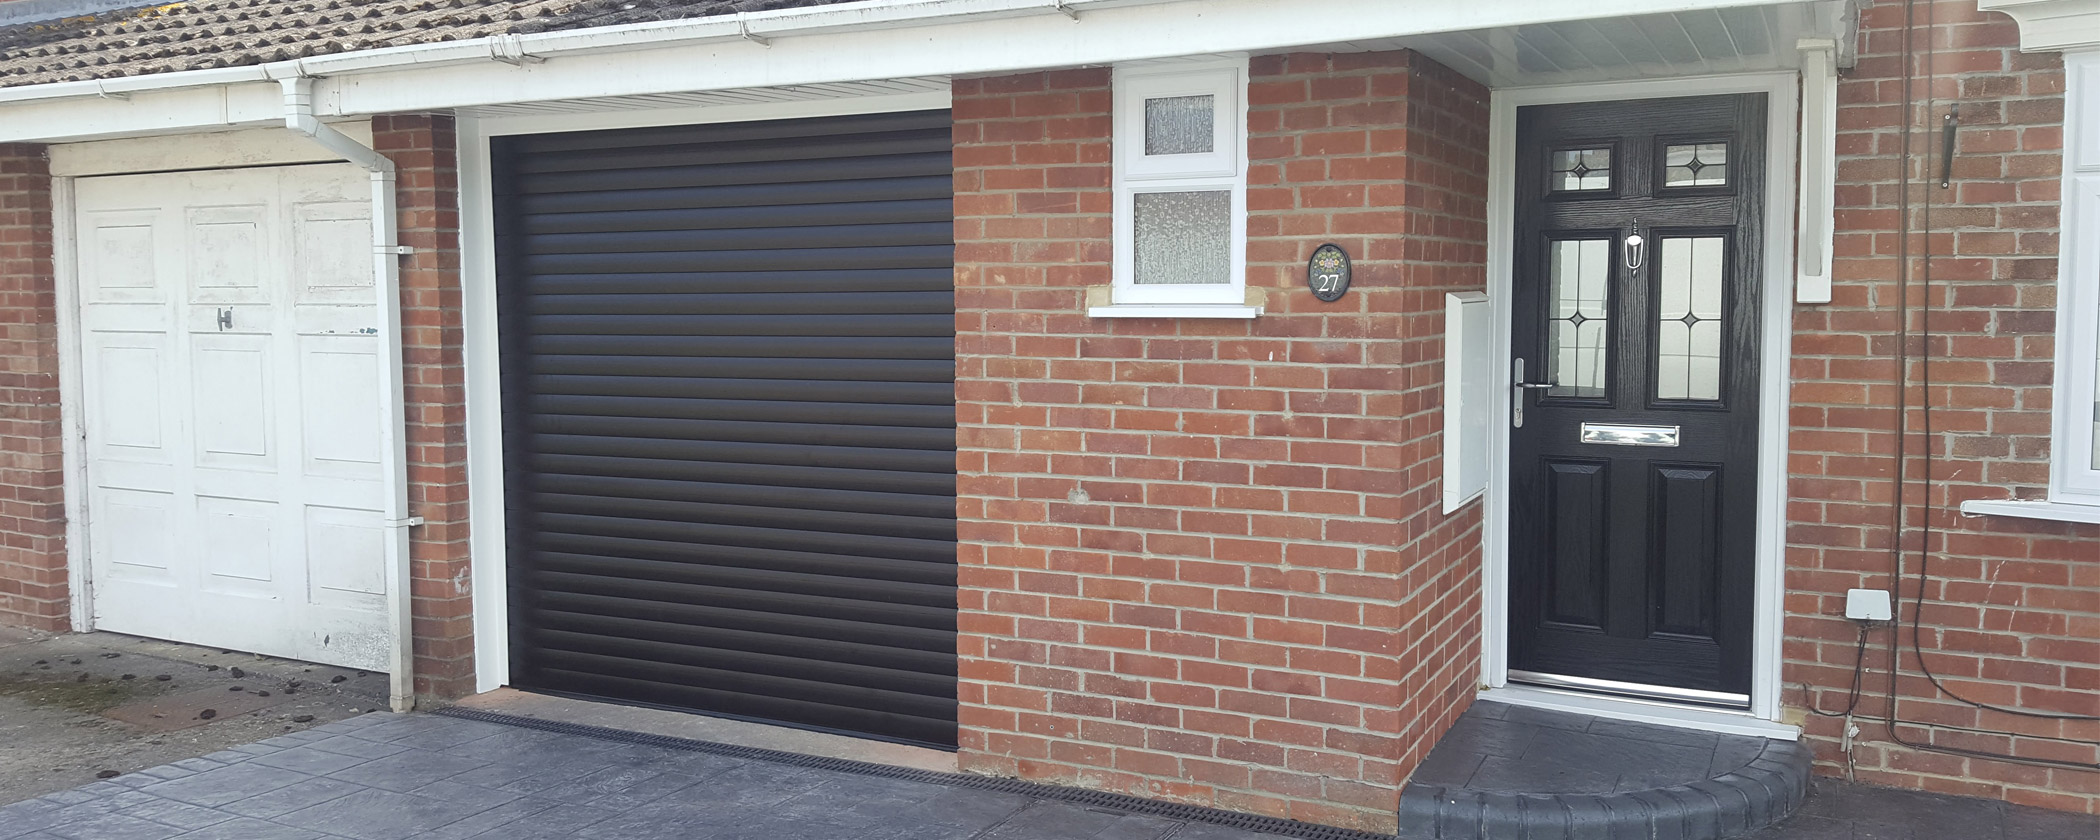 HIPWOODS GARAGE DOOR SERVICES